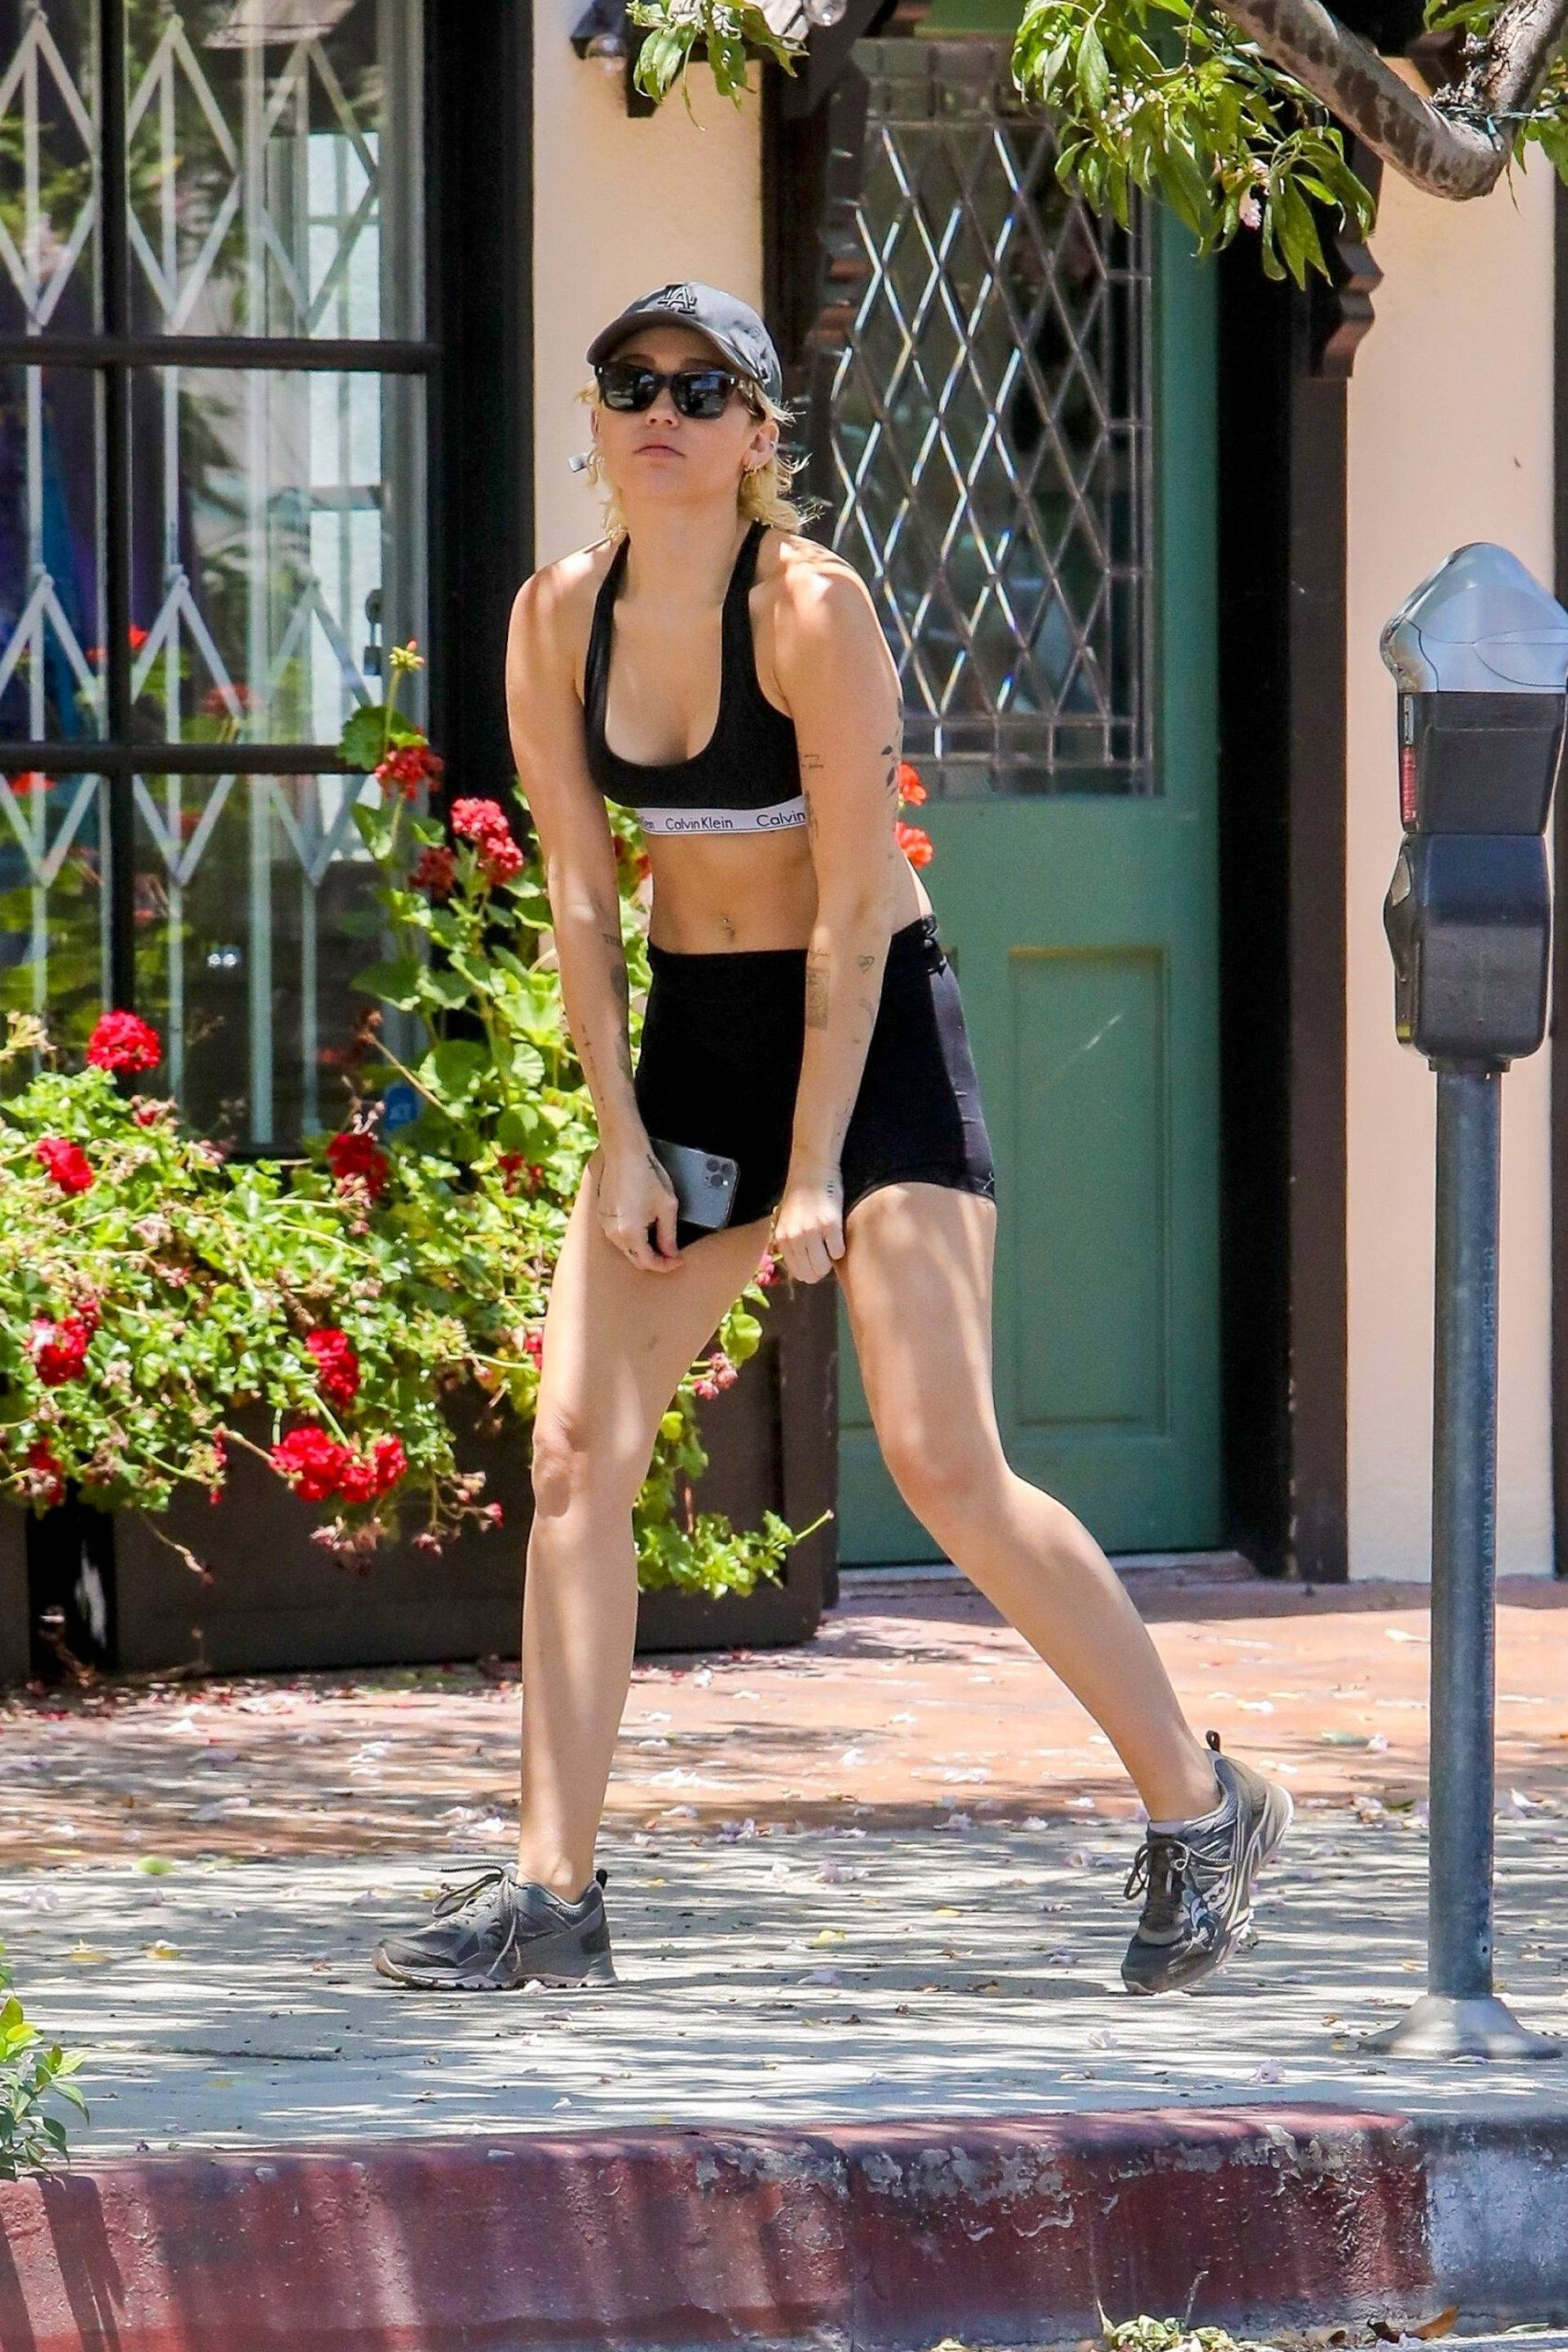 Miley Cyrus – Sexy Fit Body In Shorts And Sports Bra Out In Los Angeles 0002